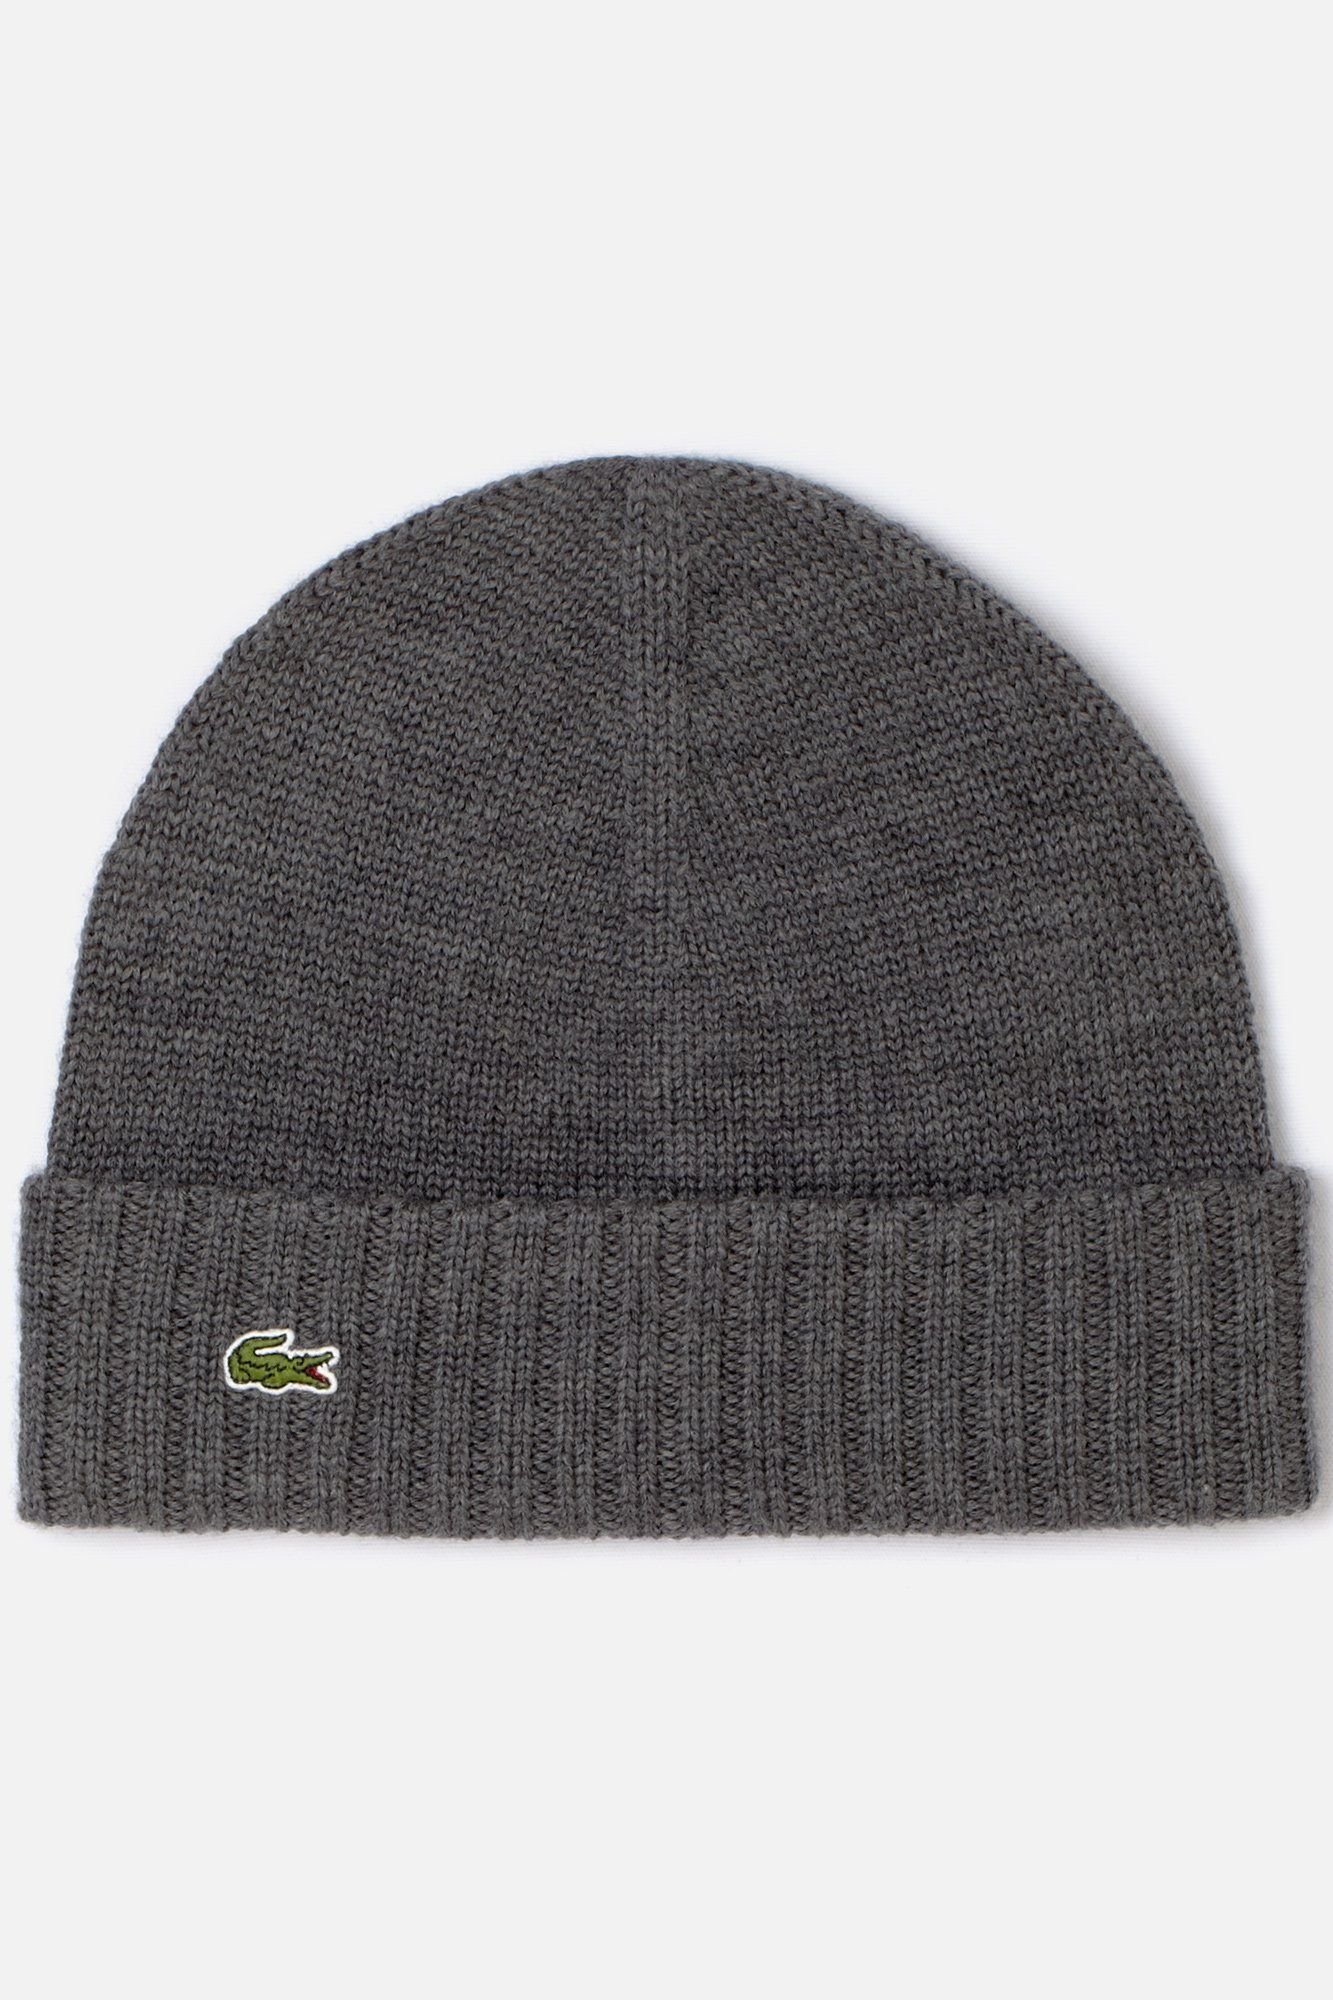 b922a43677a Lacoste Men s Green Croc Merino Knit Beanie   Caps   Hats